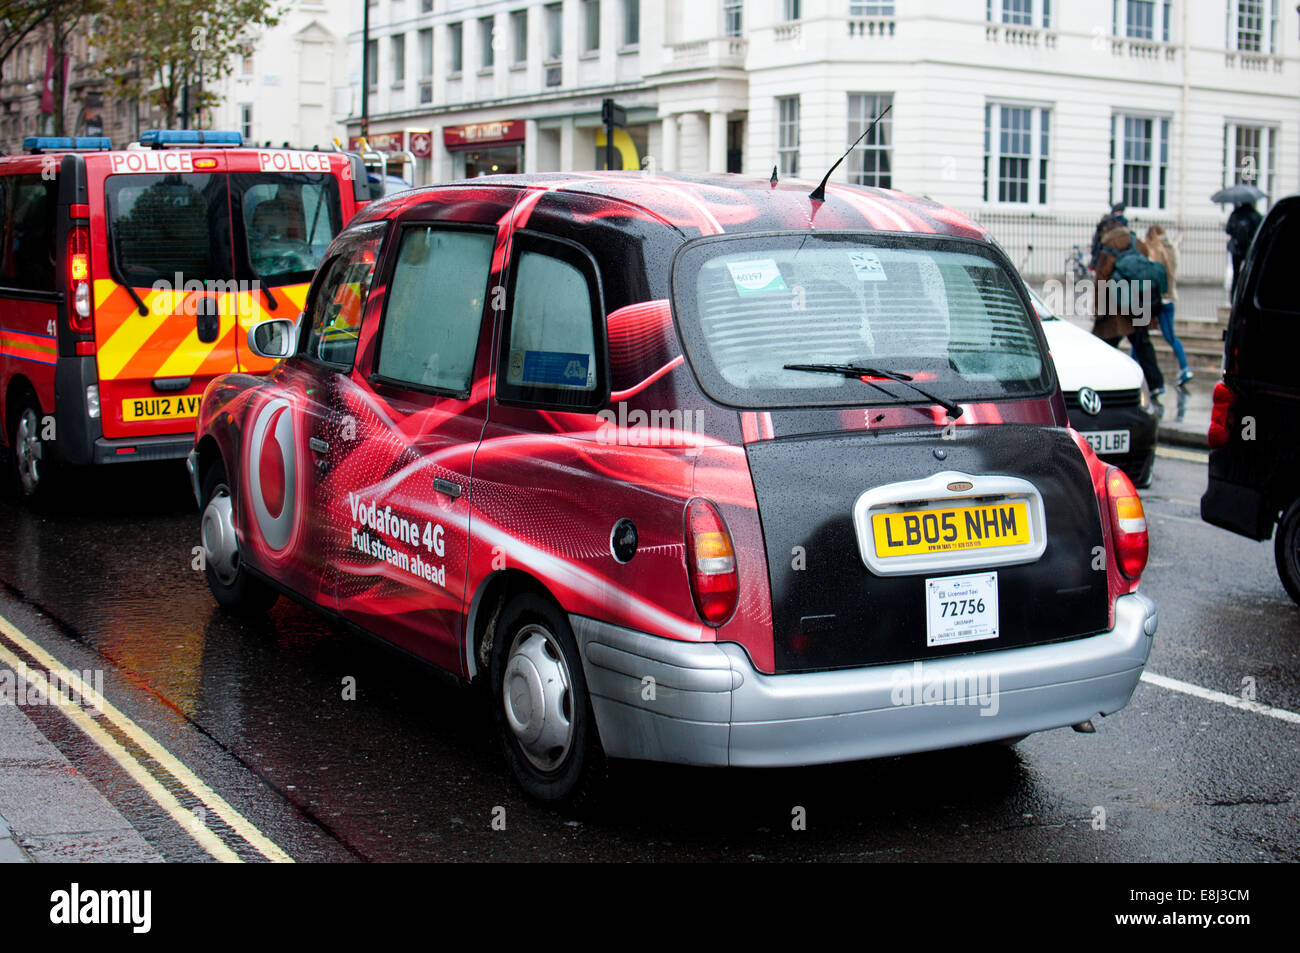 London taxi with Vodafone 4G advertisement, in wet weather, London, UK - Stock Image